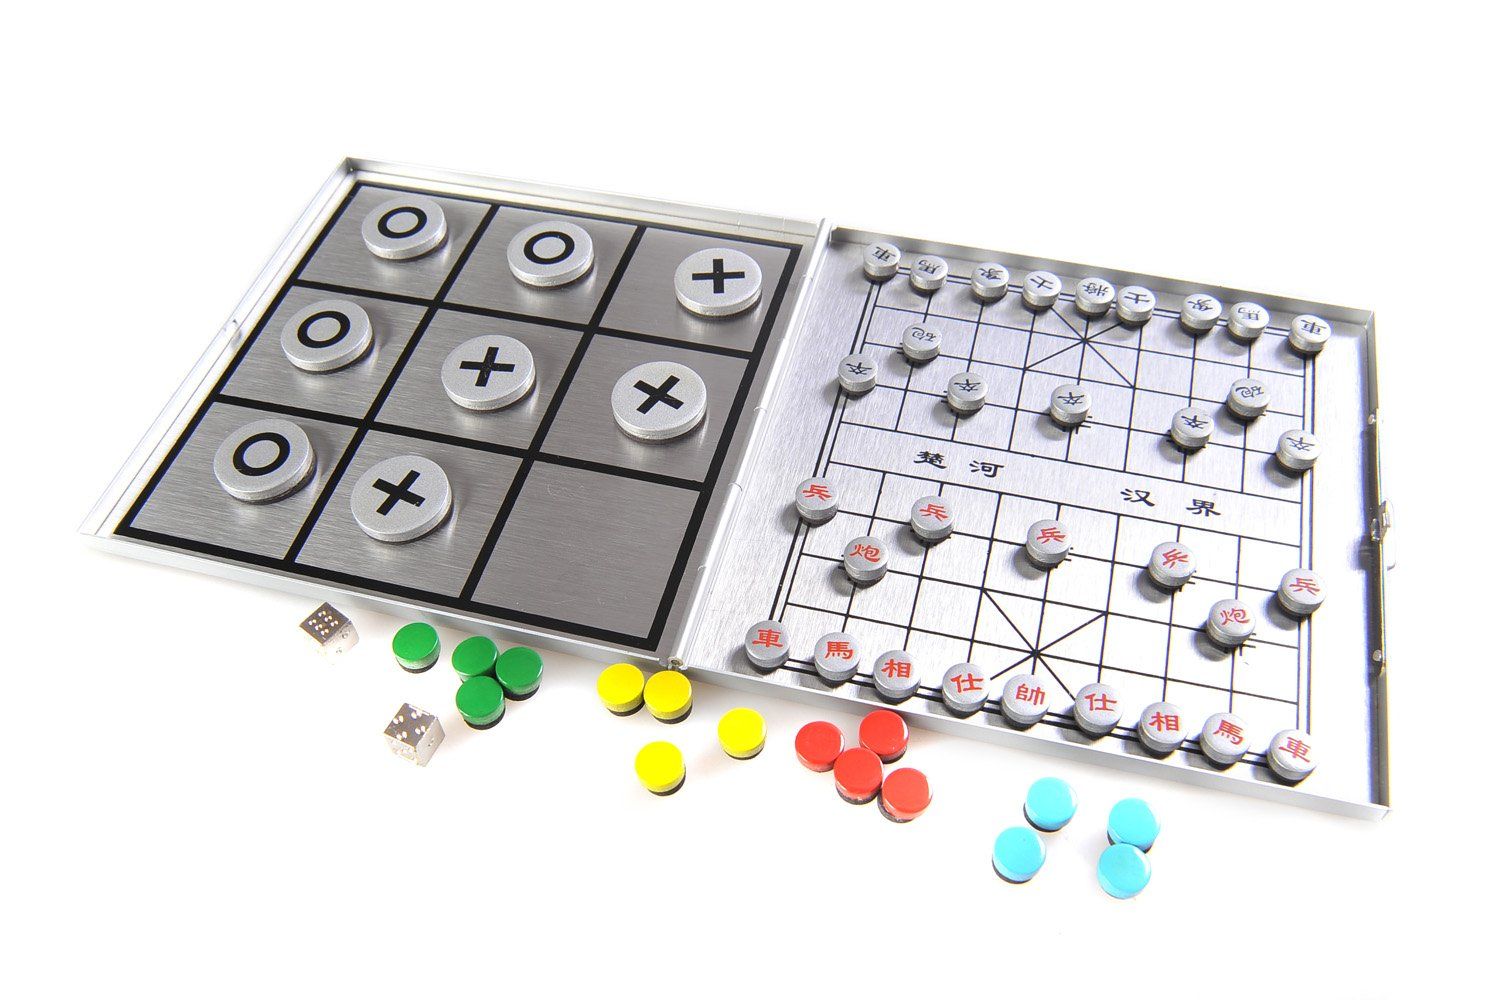 Quantum Abacus Azerus Alu Line: 4-in-1 Game Set B - Xianqi, Ludo, Solitaire (Peg Solitaire or Sailor's Solitaire), Tic-Tac-Toe, with Magnetic Game Pieces, Playing Board (XY041P4 DE)